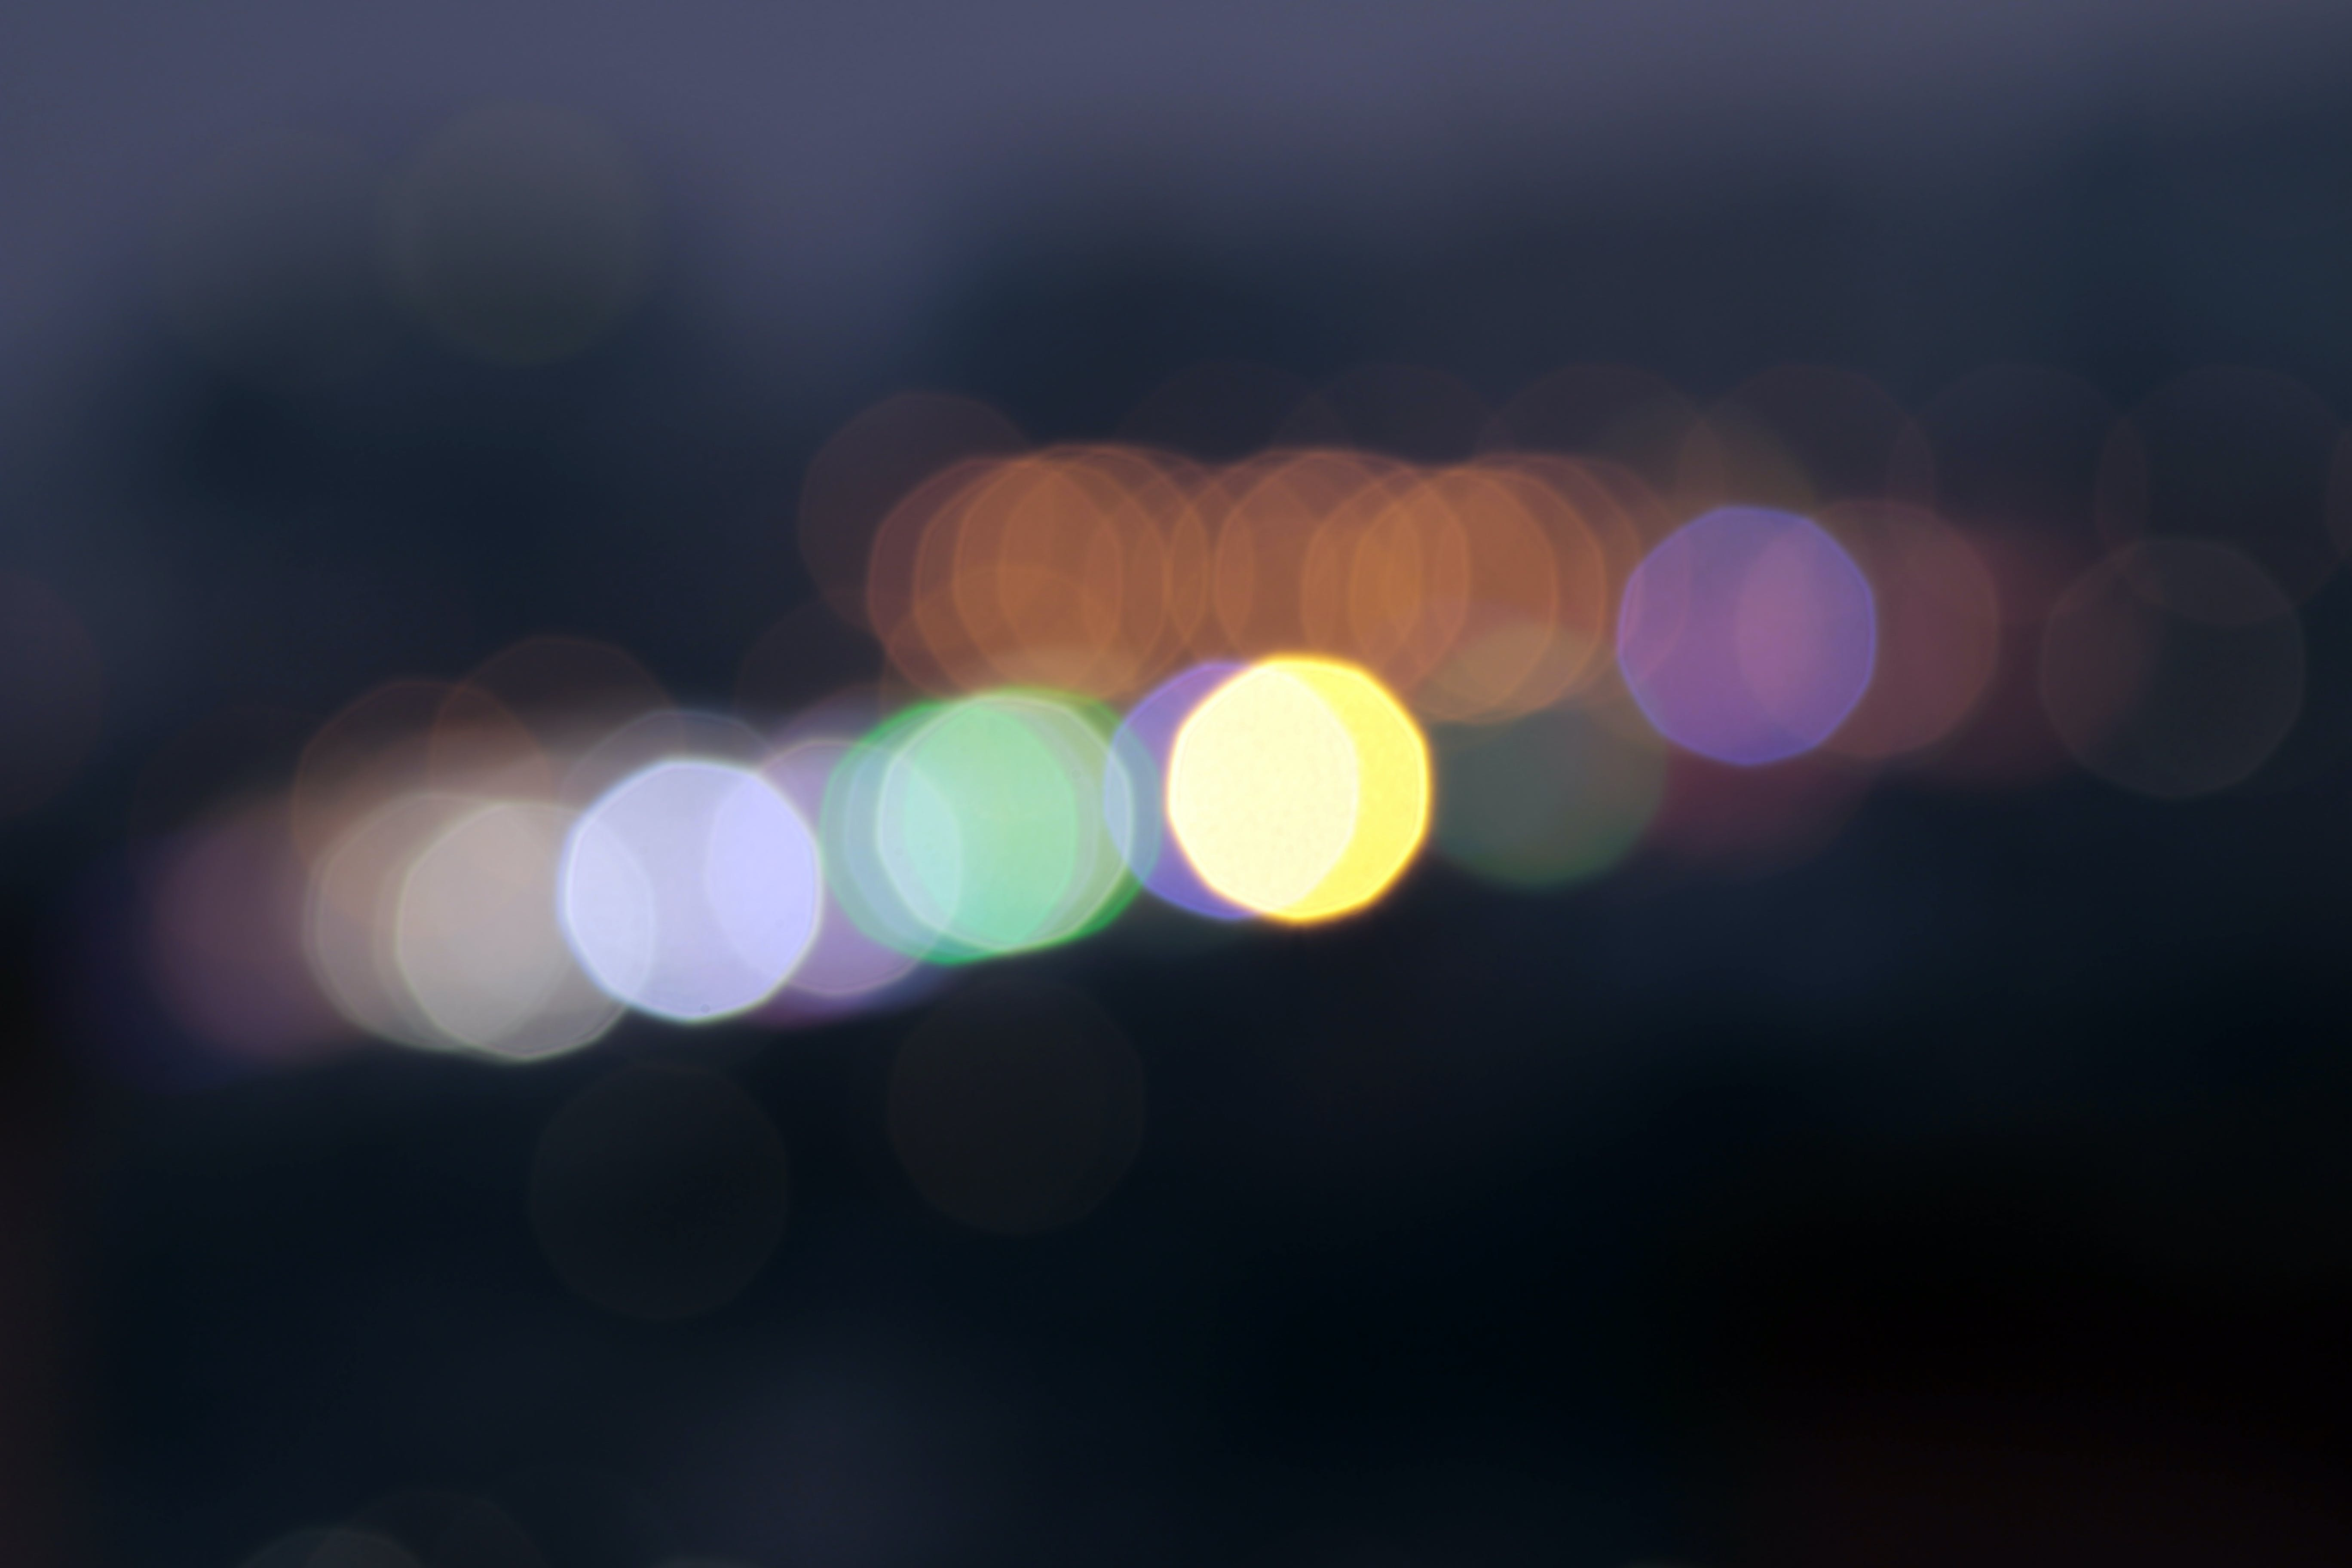 abstract, bokeh, dark